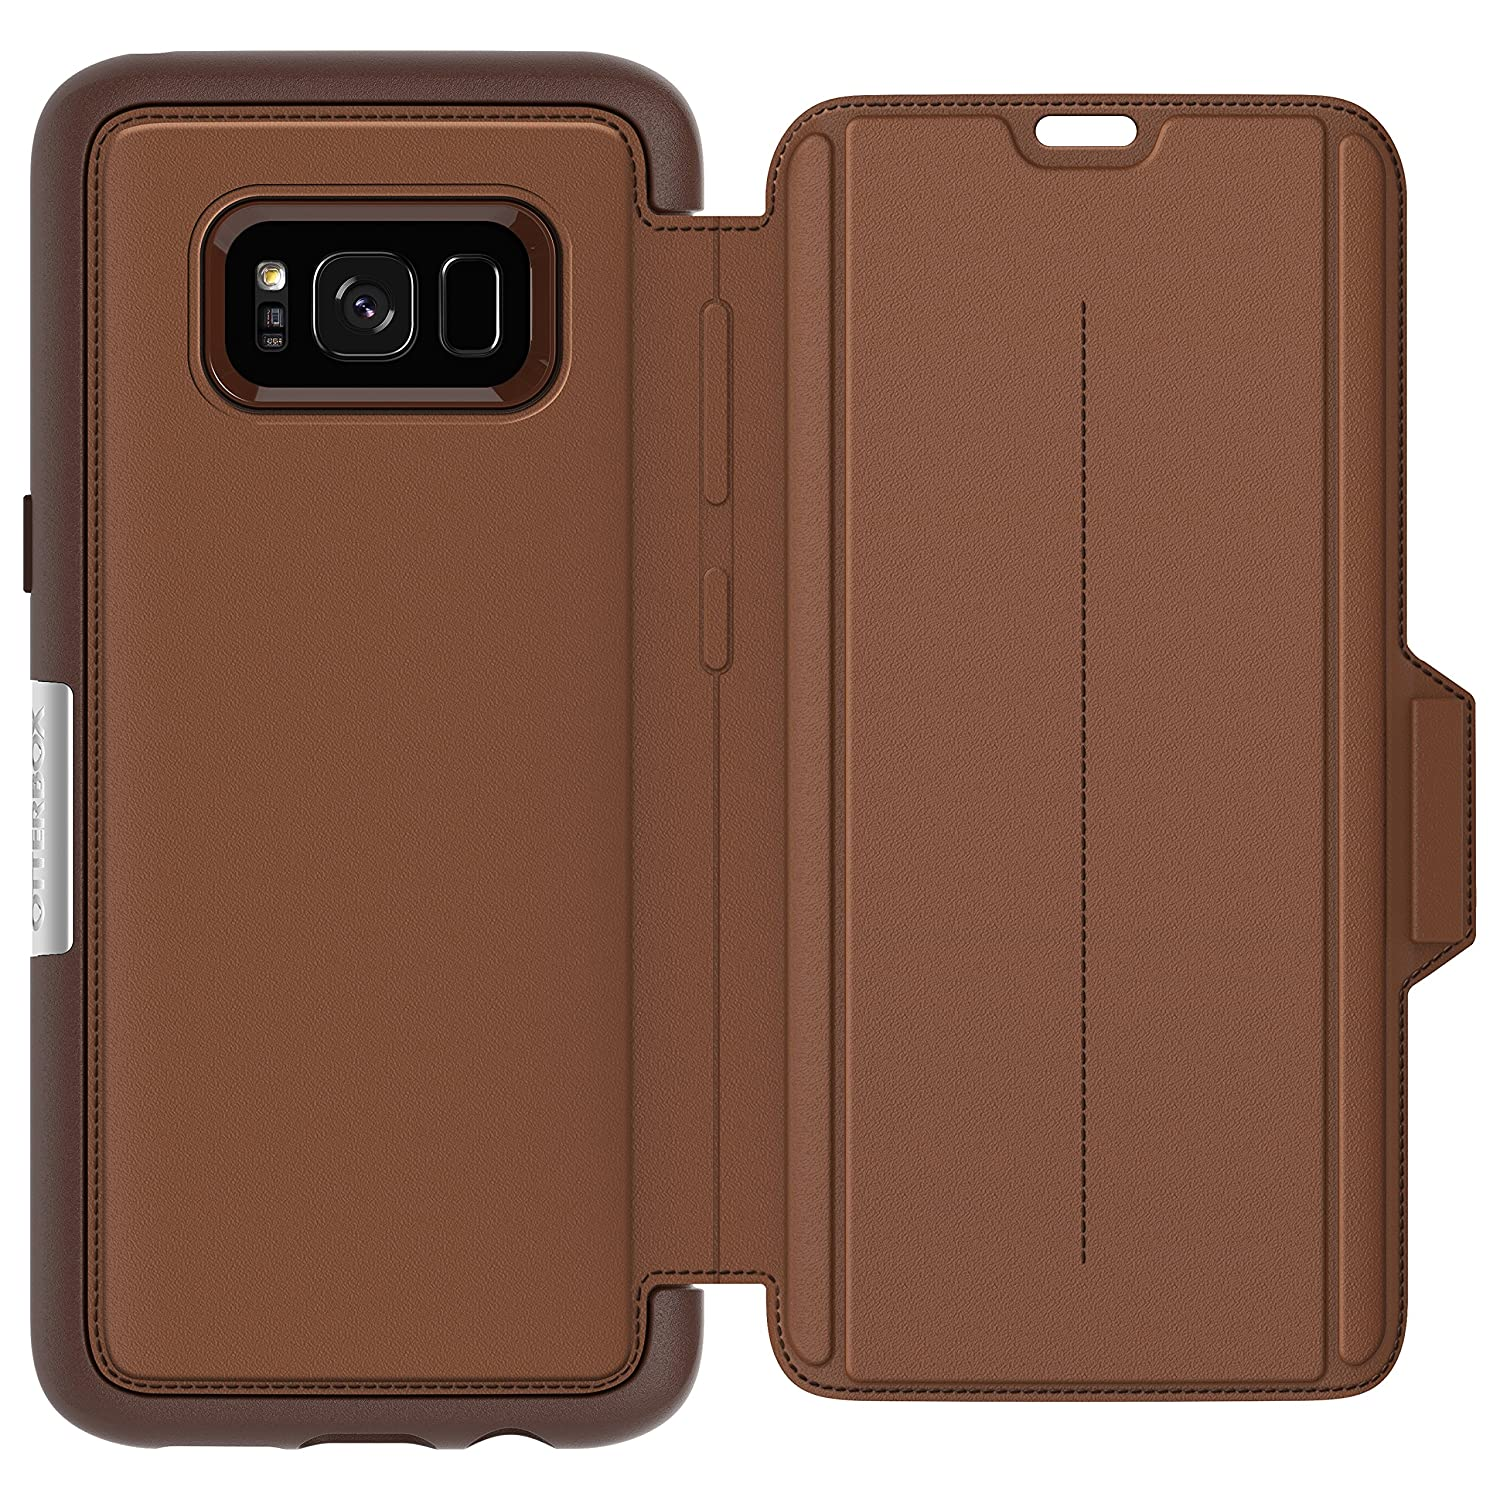 100% authentic bbc1b cd4d3 OtterBox Strada Series for Samsung Galaxy S8 - Burnt Saddle Brown